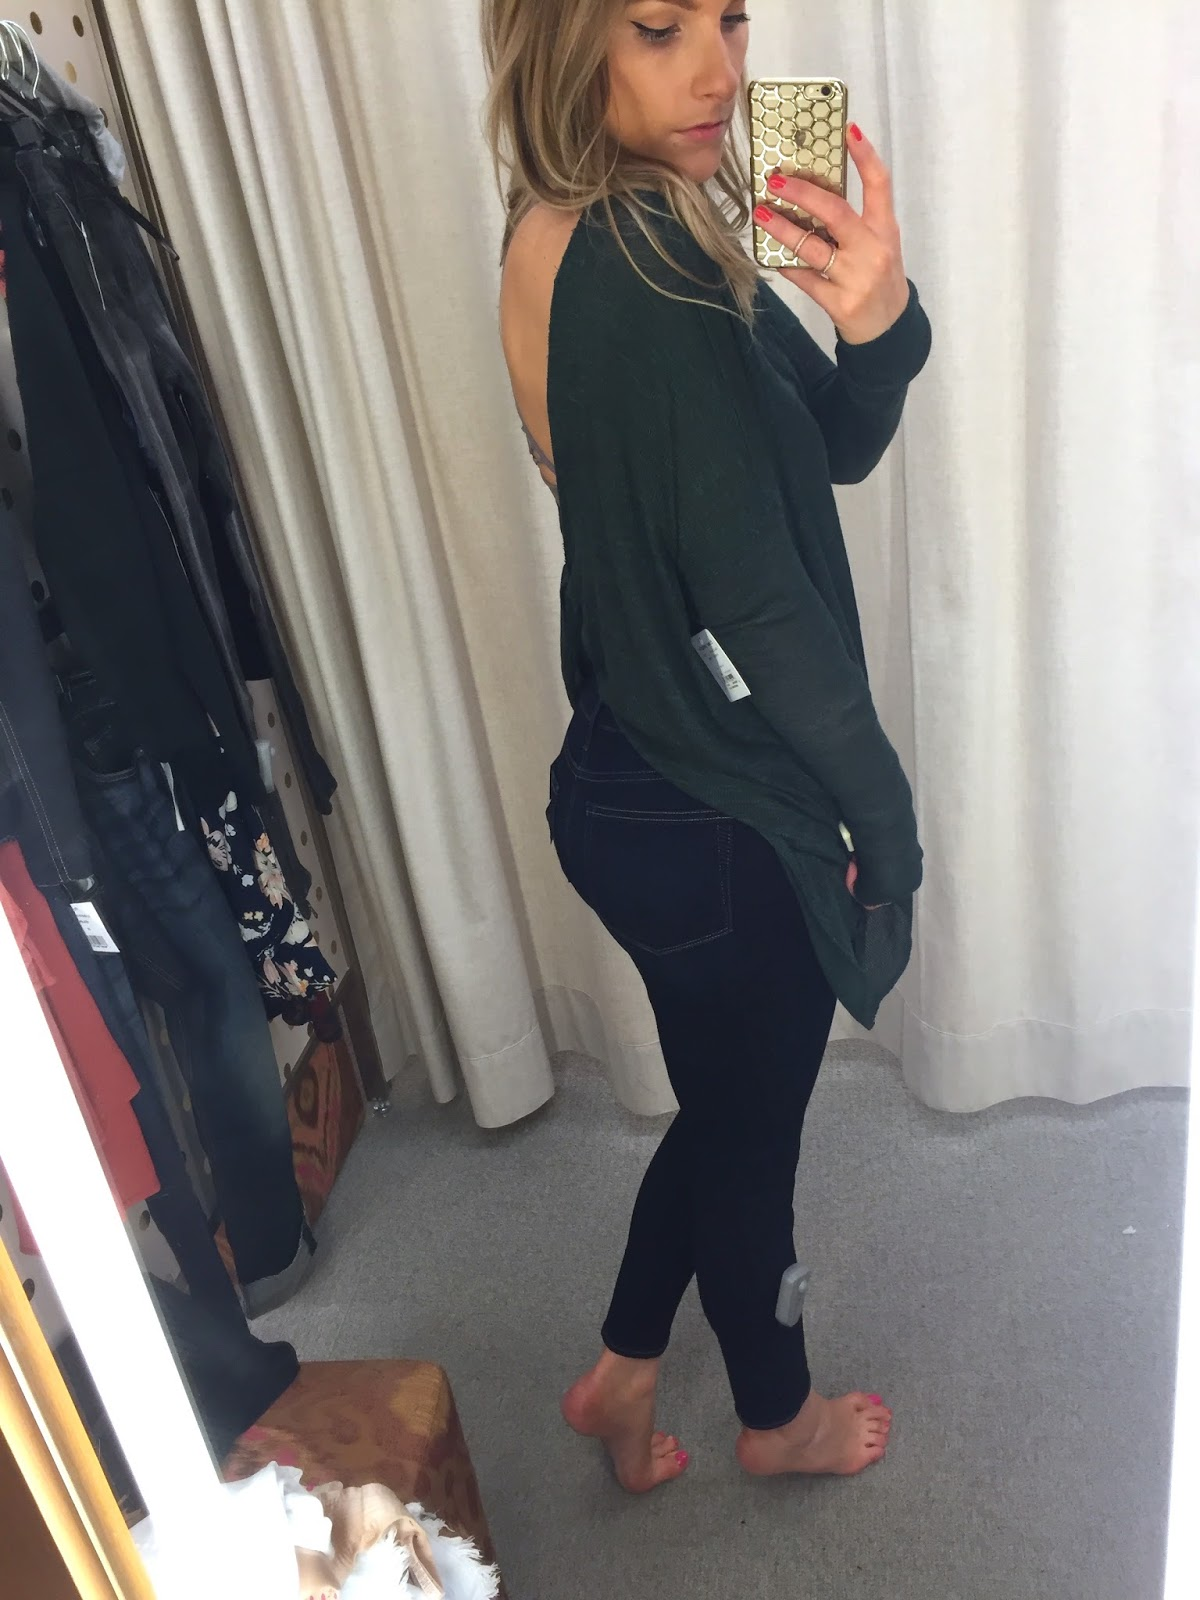 free people open back sweater top dark green acoest1984 nordstrom anniversary sale try on fitting room pics nordstrom ottawa fashion blog